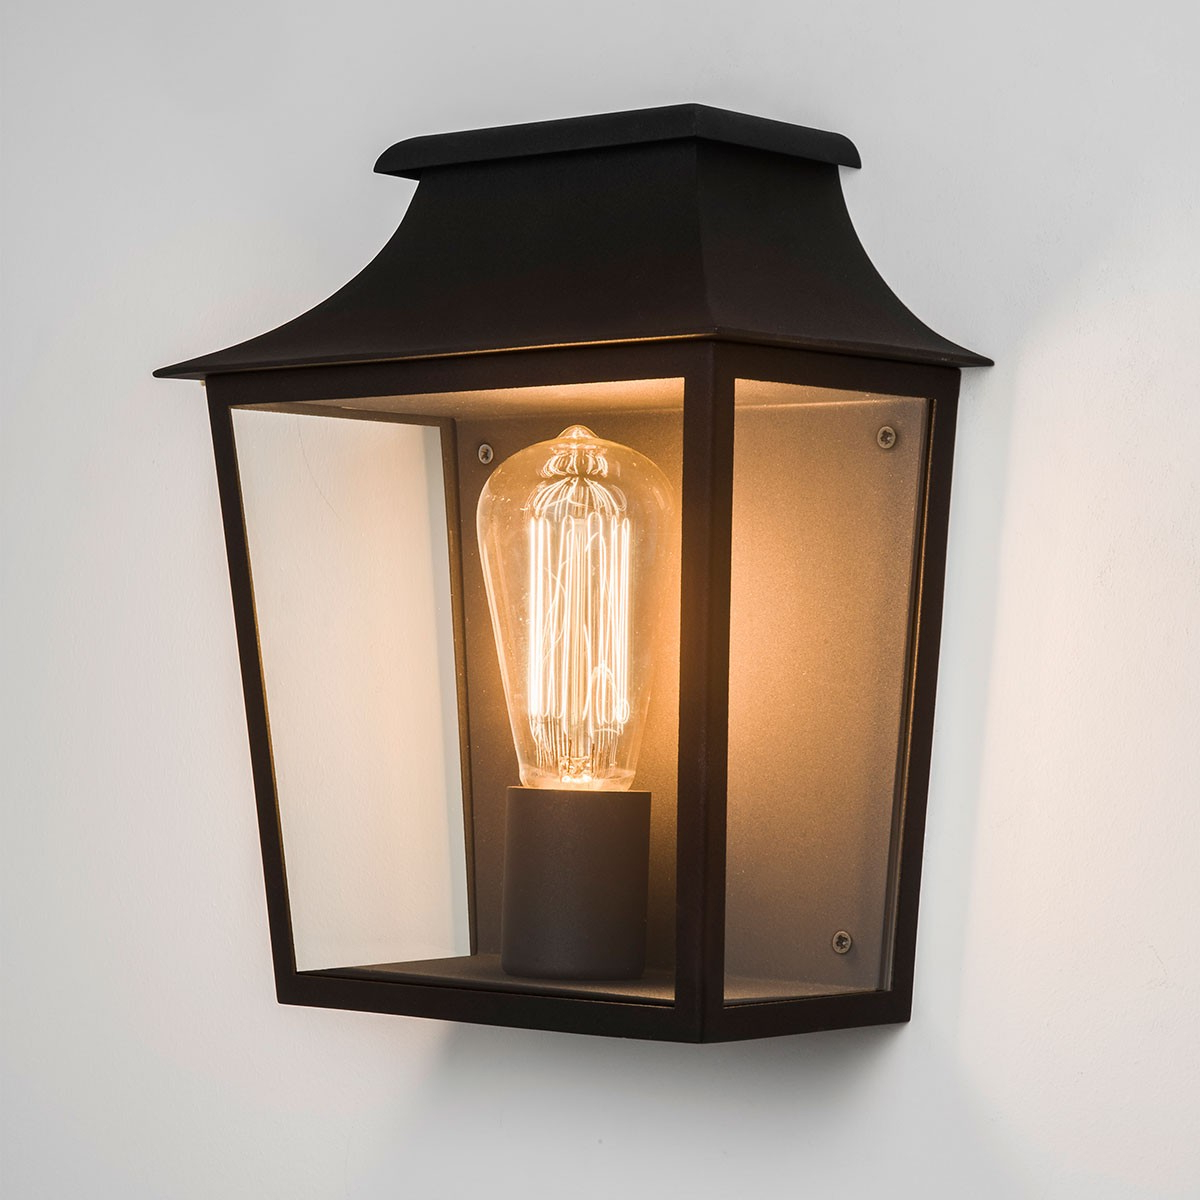 Nayen Black Wall Lanterns With Regard To Current Astro Richmond Black Outdoor Wall Light At Uk Electrical (View 12 of 20)